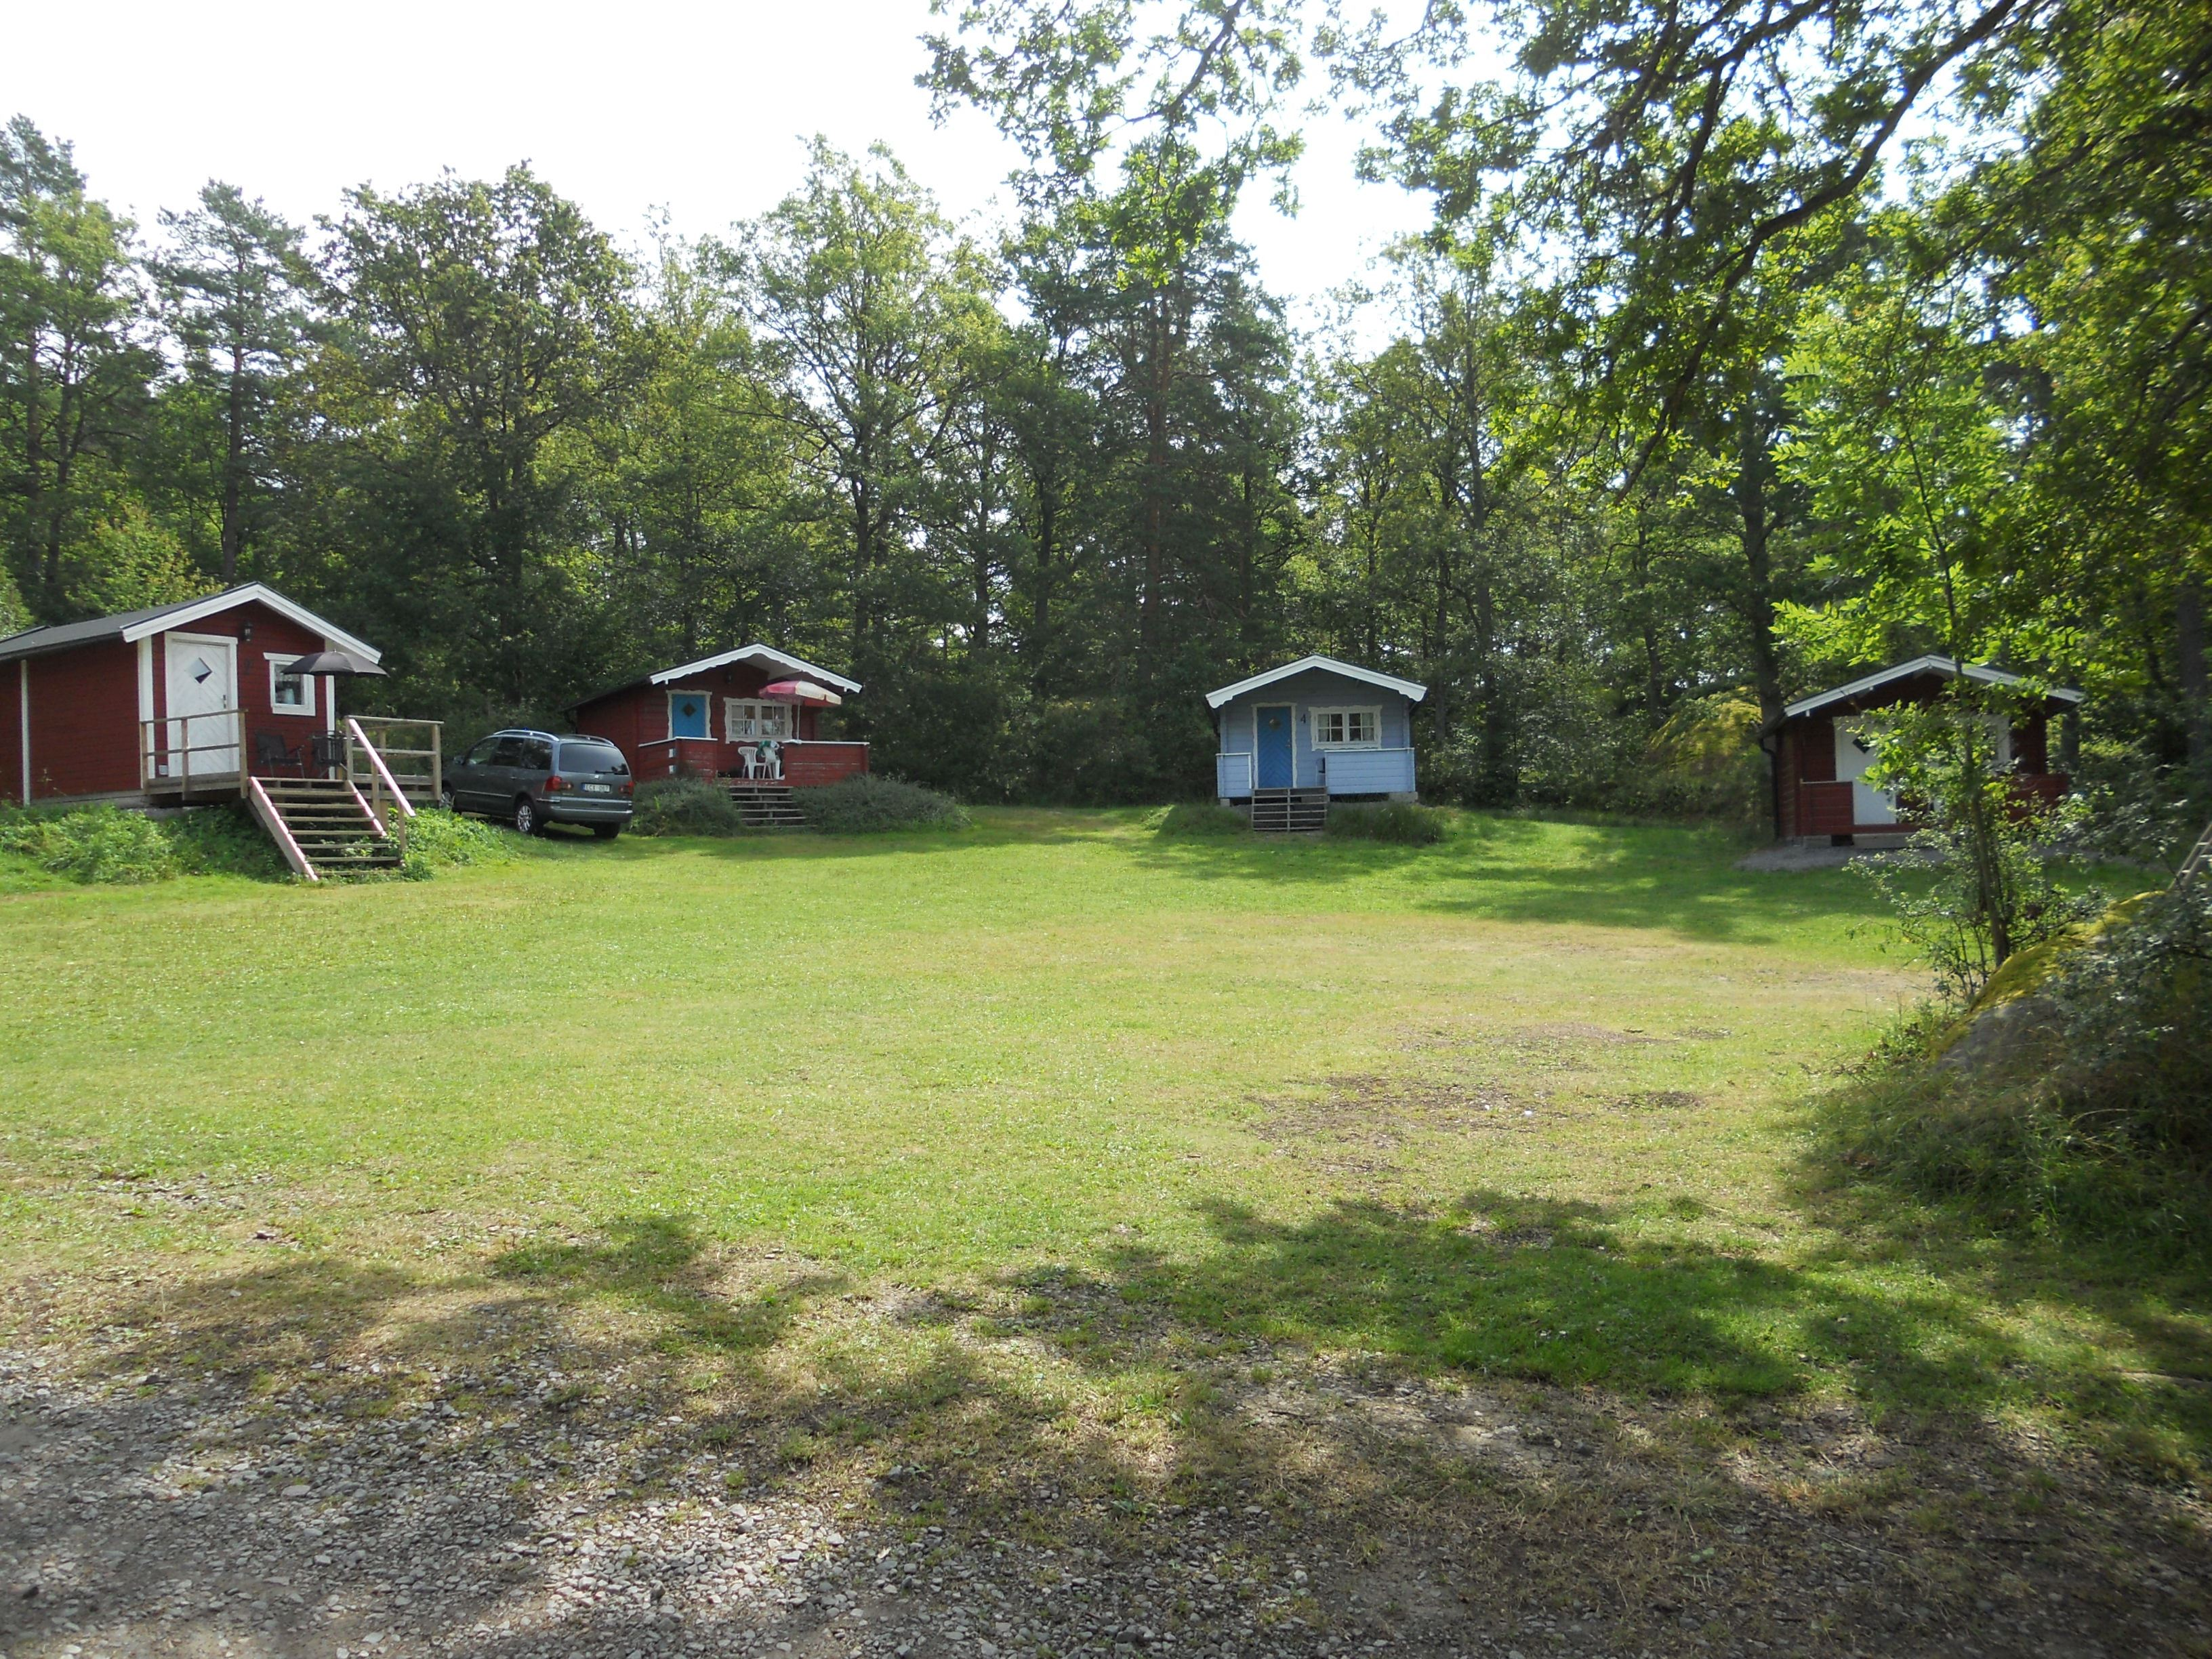 Blankaholms Naturcamping/Cabins